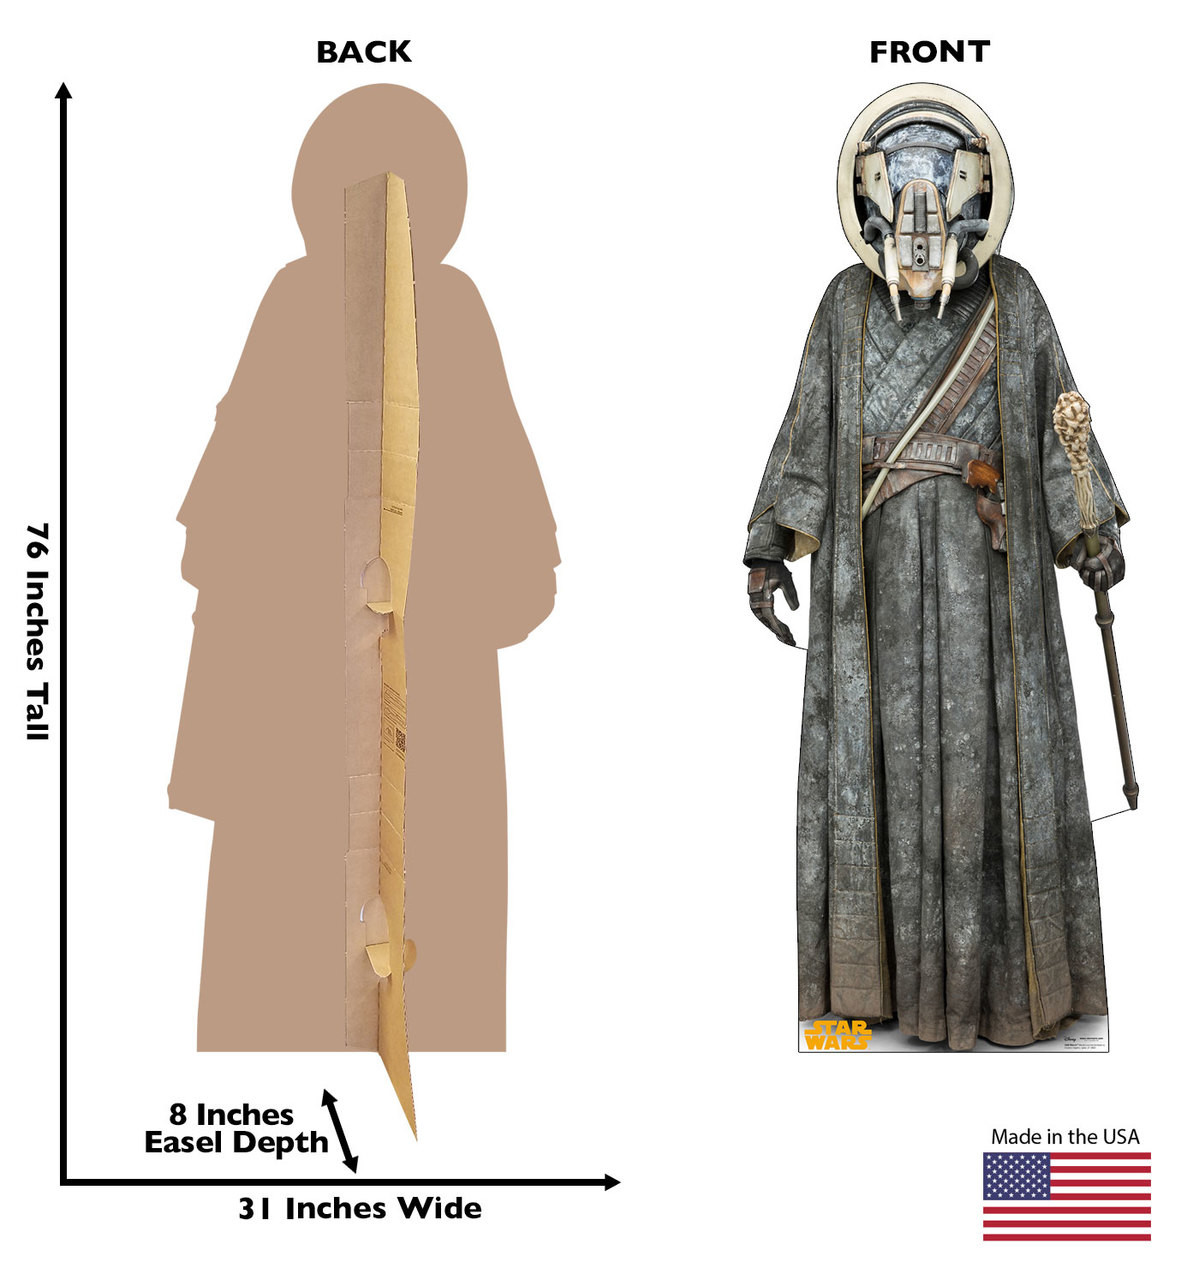 Moloch™ Life-size cardboard standee back and front with dimensions.